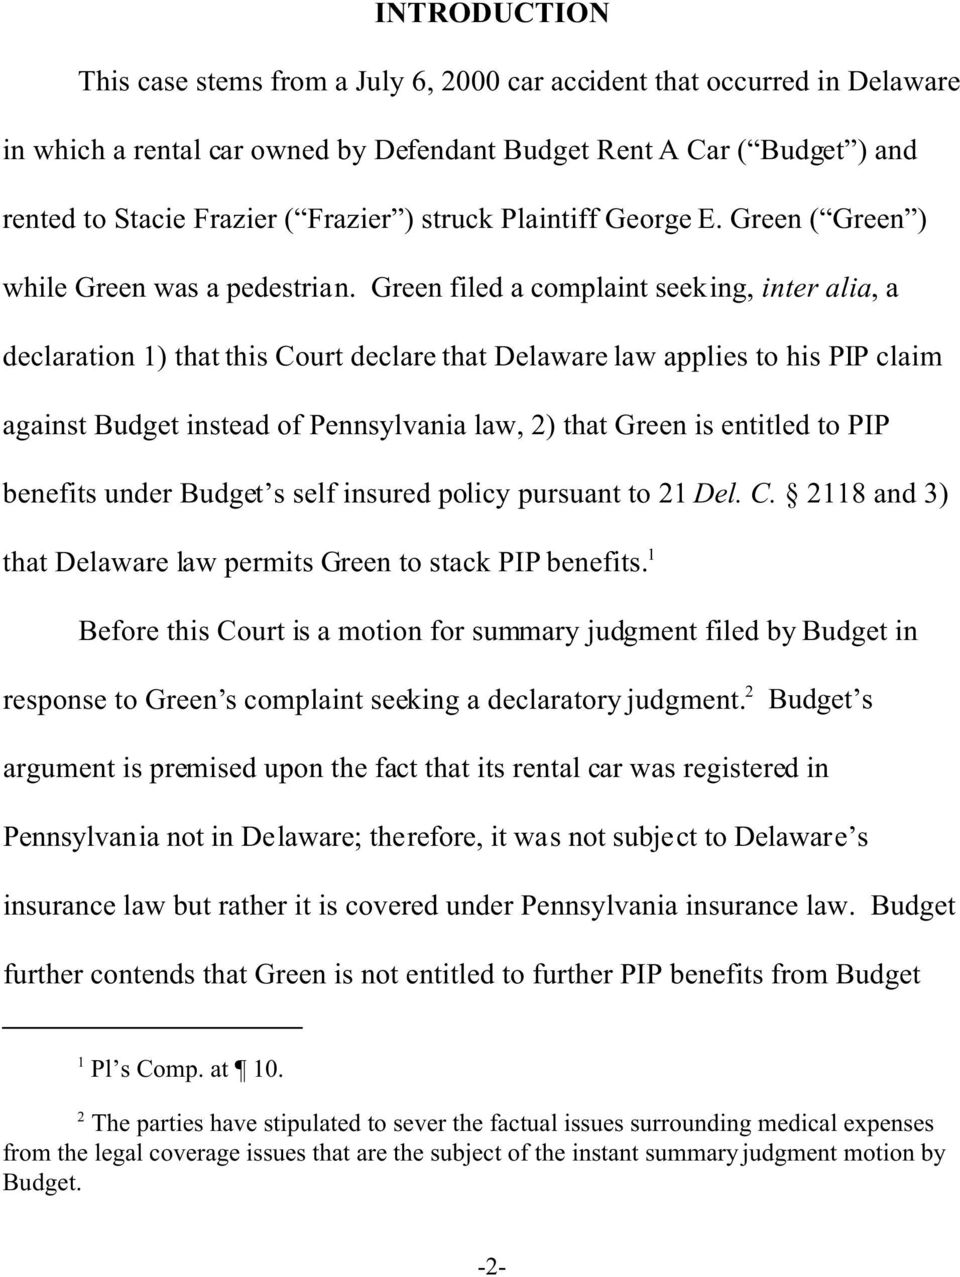 Green filed a complaint seeking, inter alia, a declaration 1) that this Court declare that Delaware law applies to his PIP claim against Budget instead of Pennsylvania law, 2) that Green is entitled